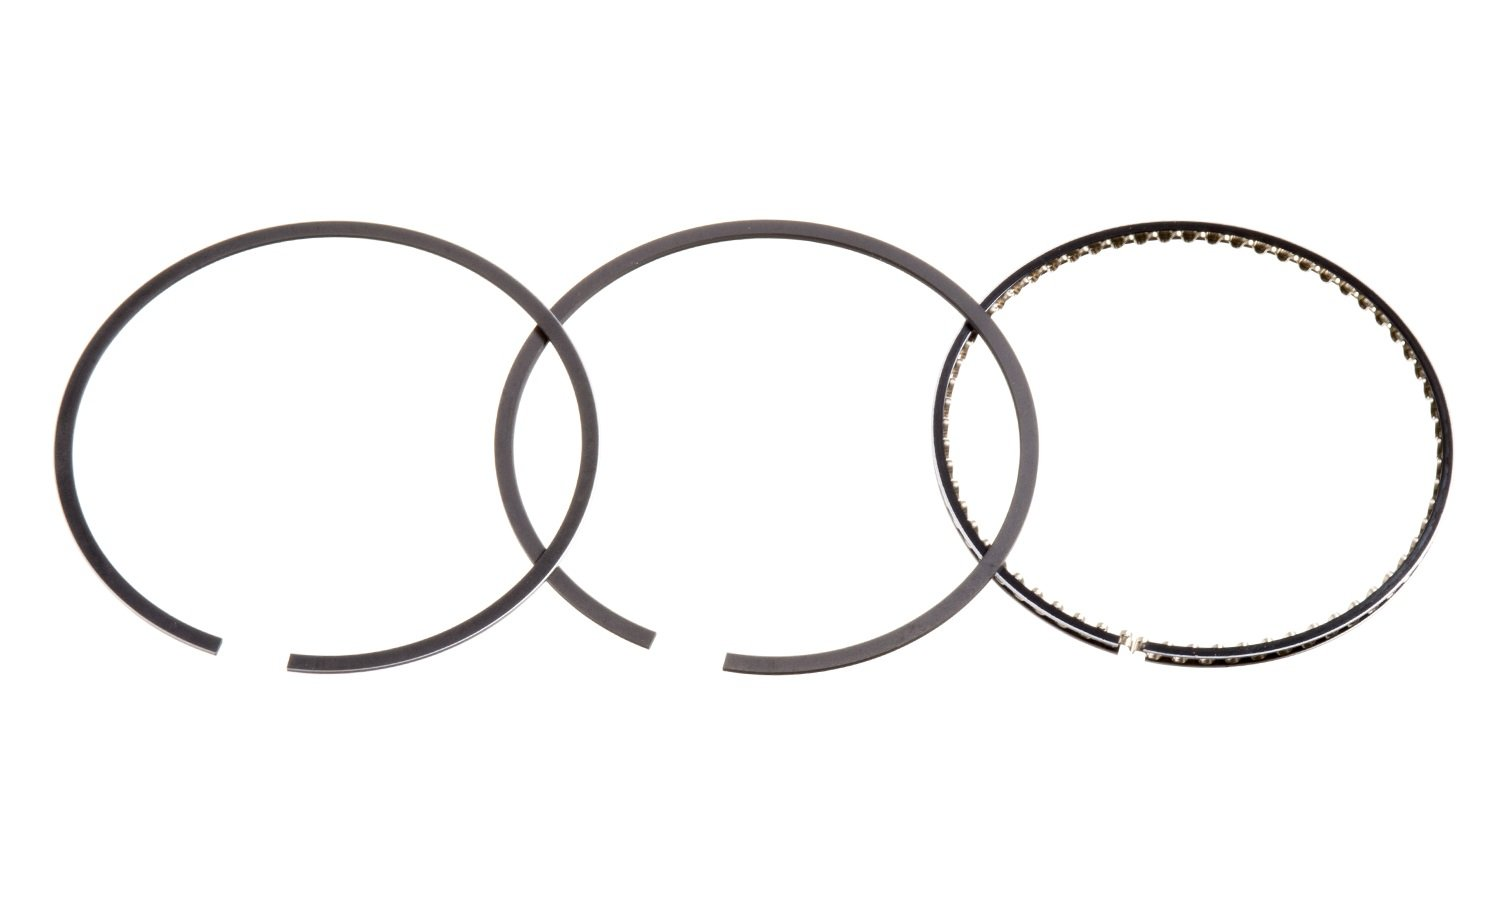 Hastings 2C5556 4-Cylinder Piston Ring Set